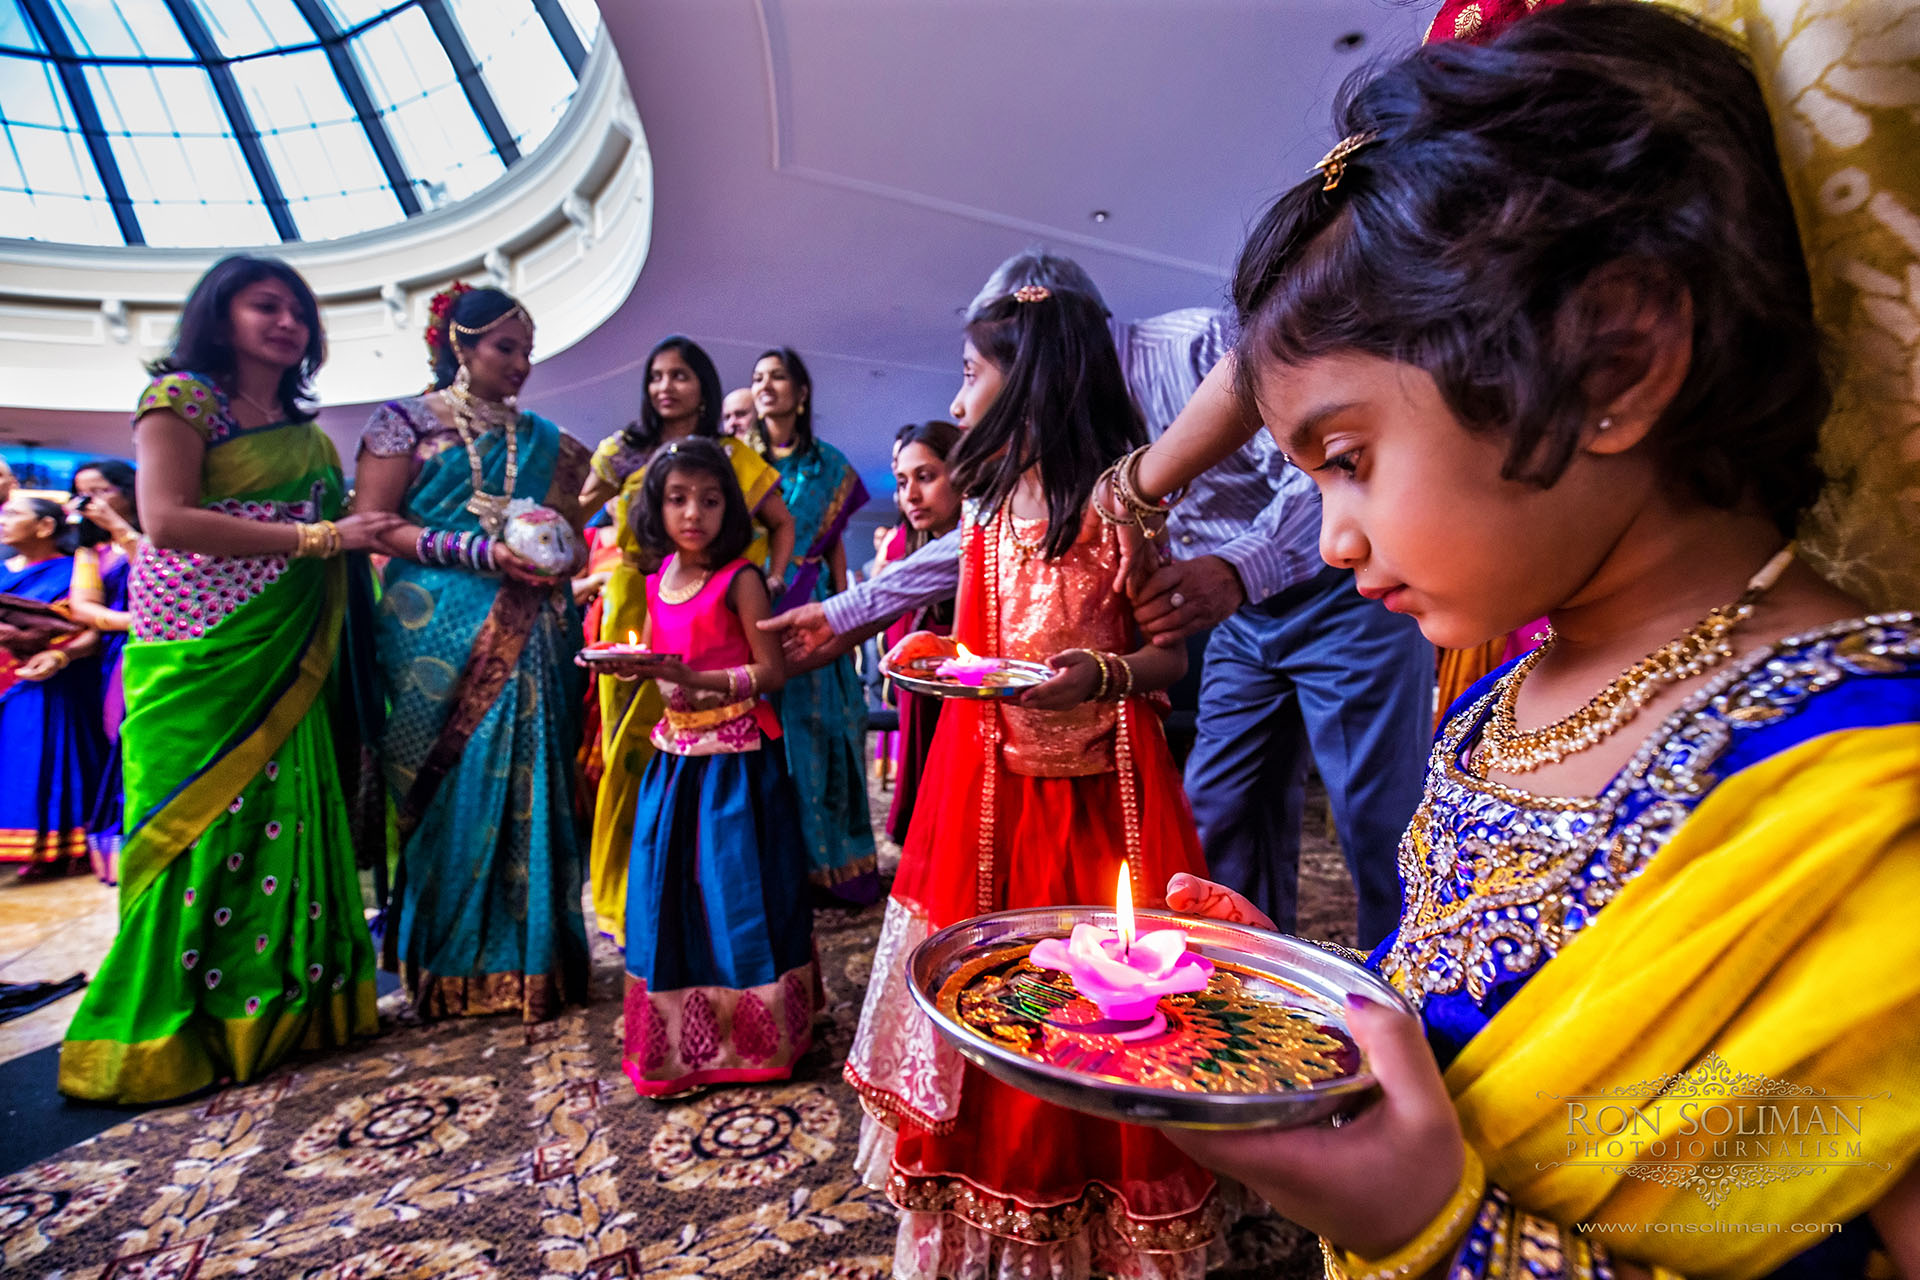 Hindu Ceremony at The Merion